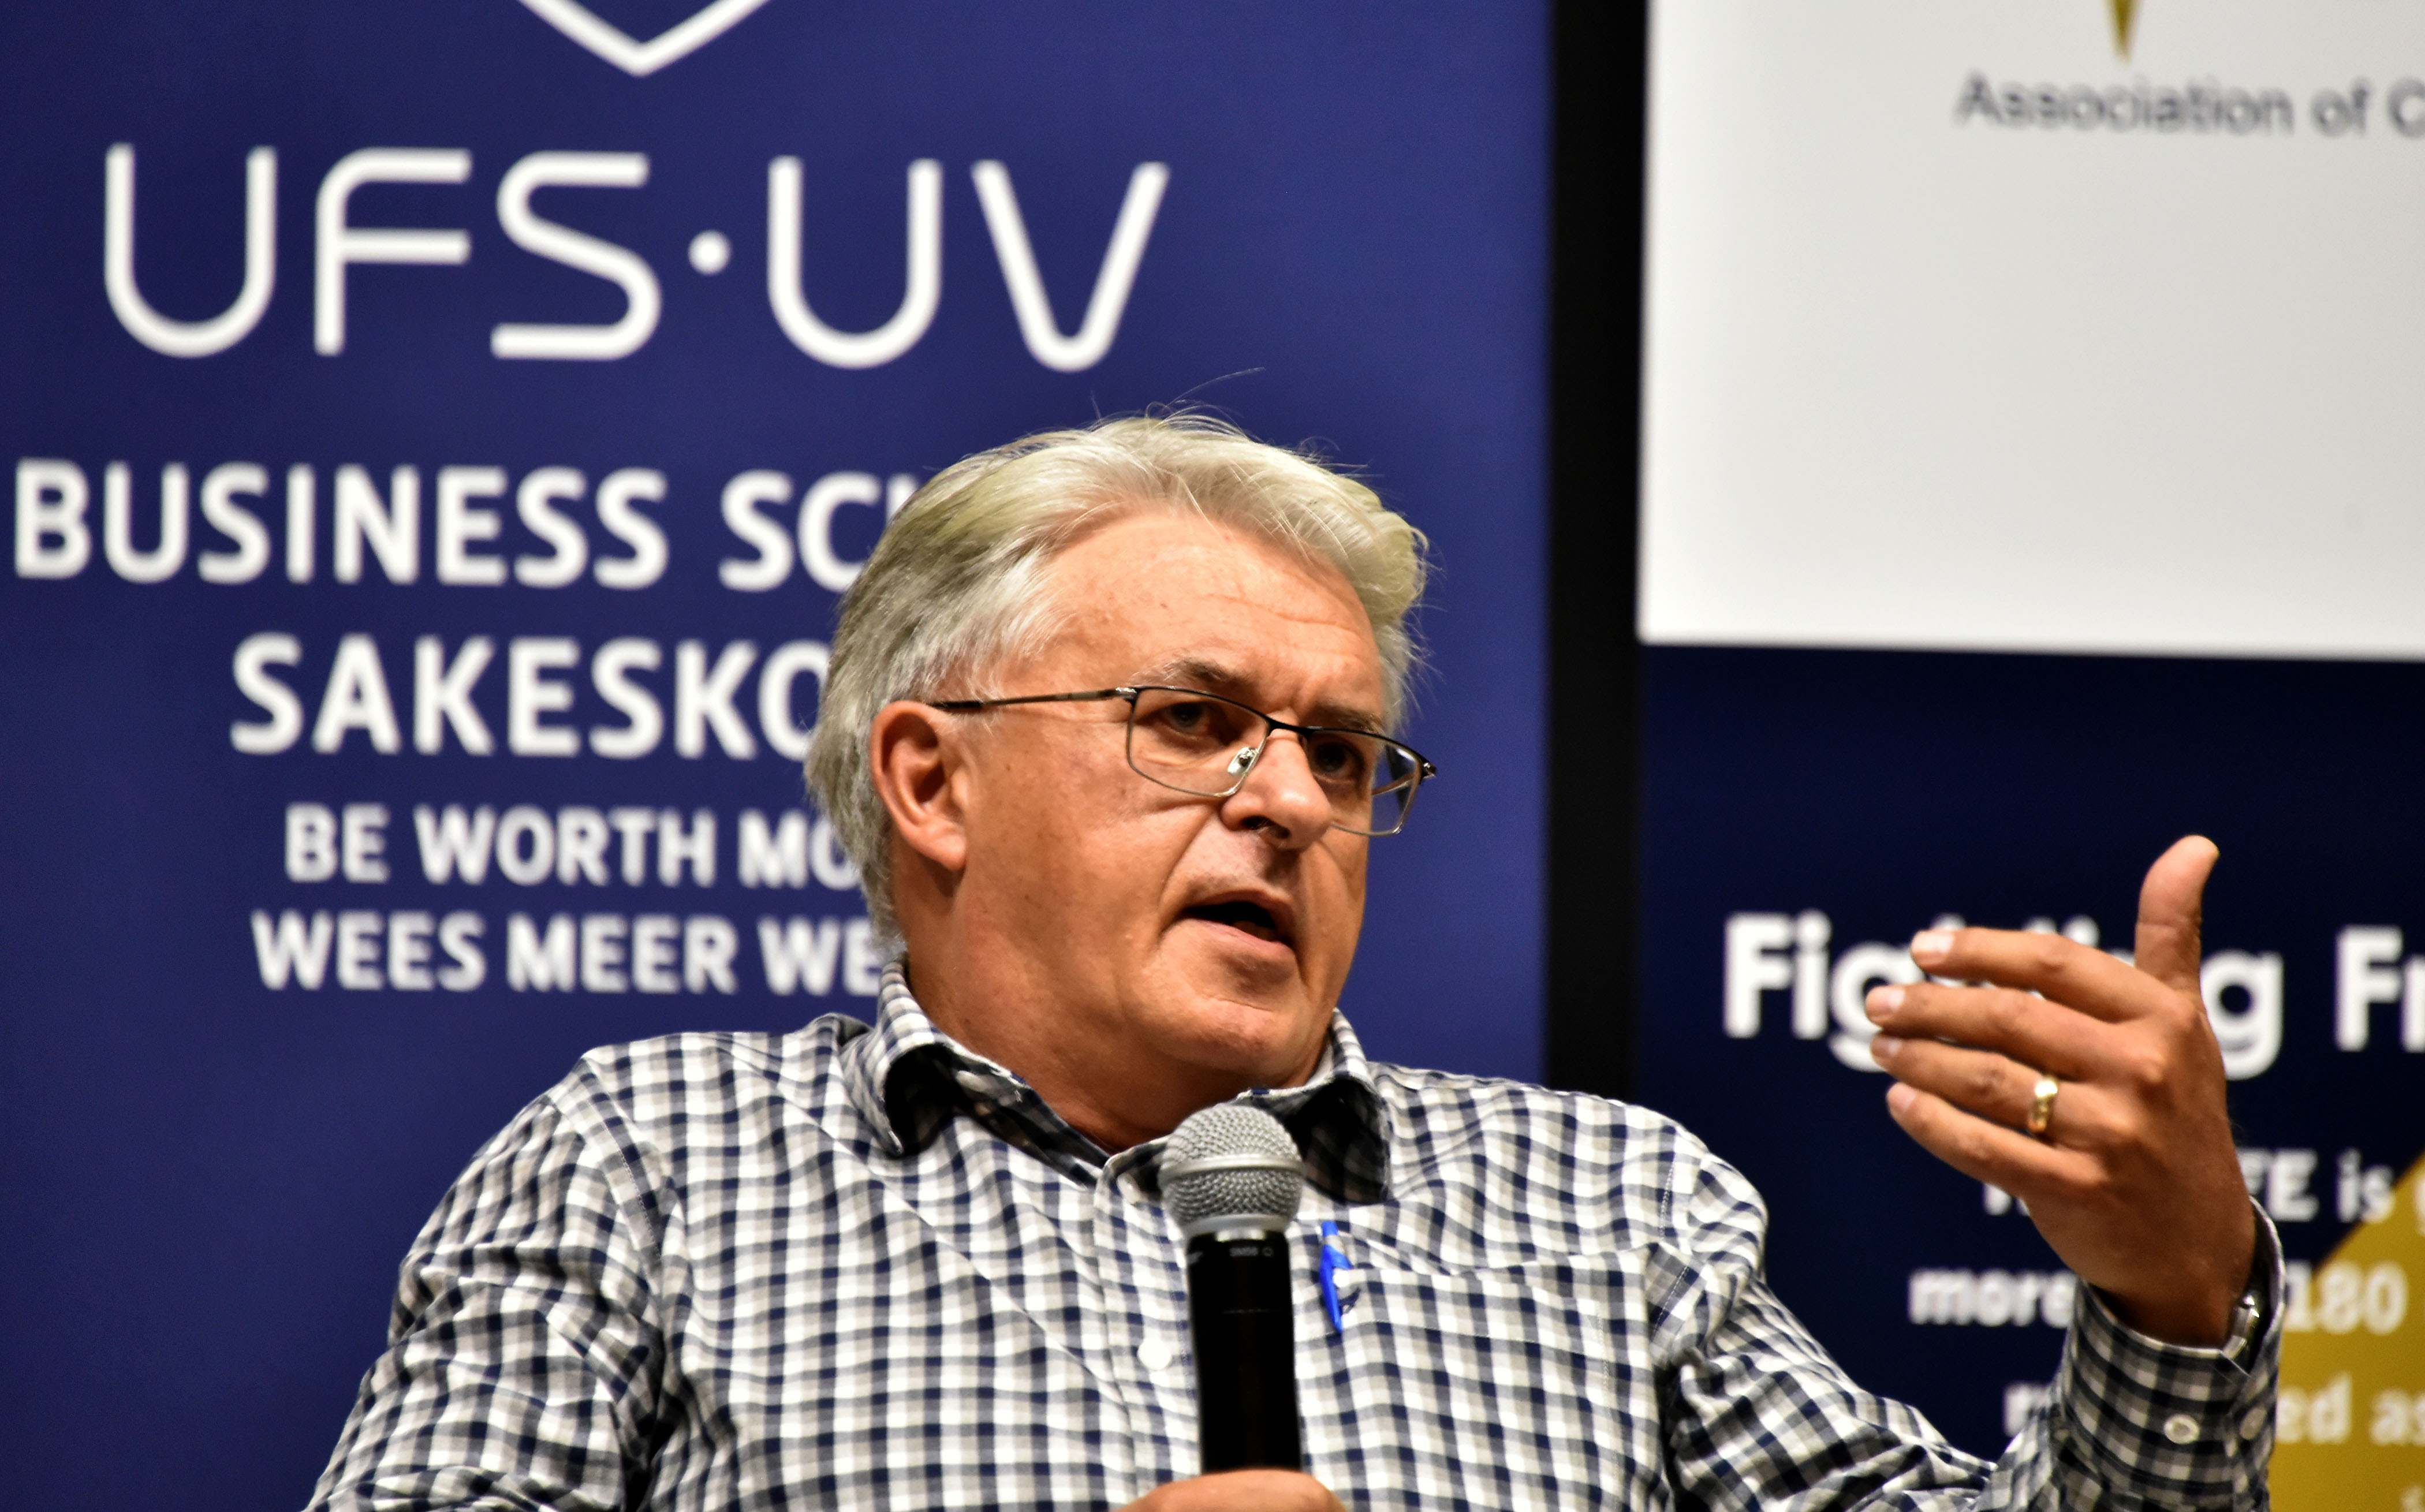 Pieter Roux from the UFS Business School